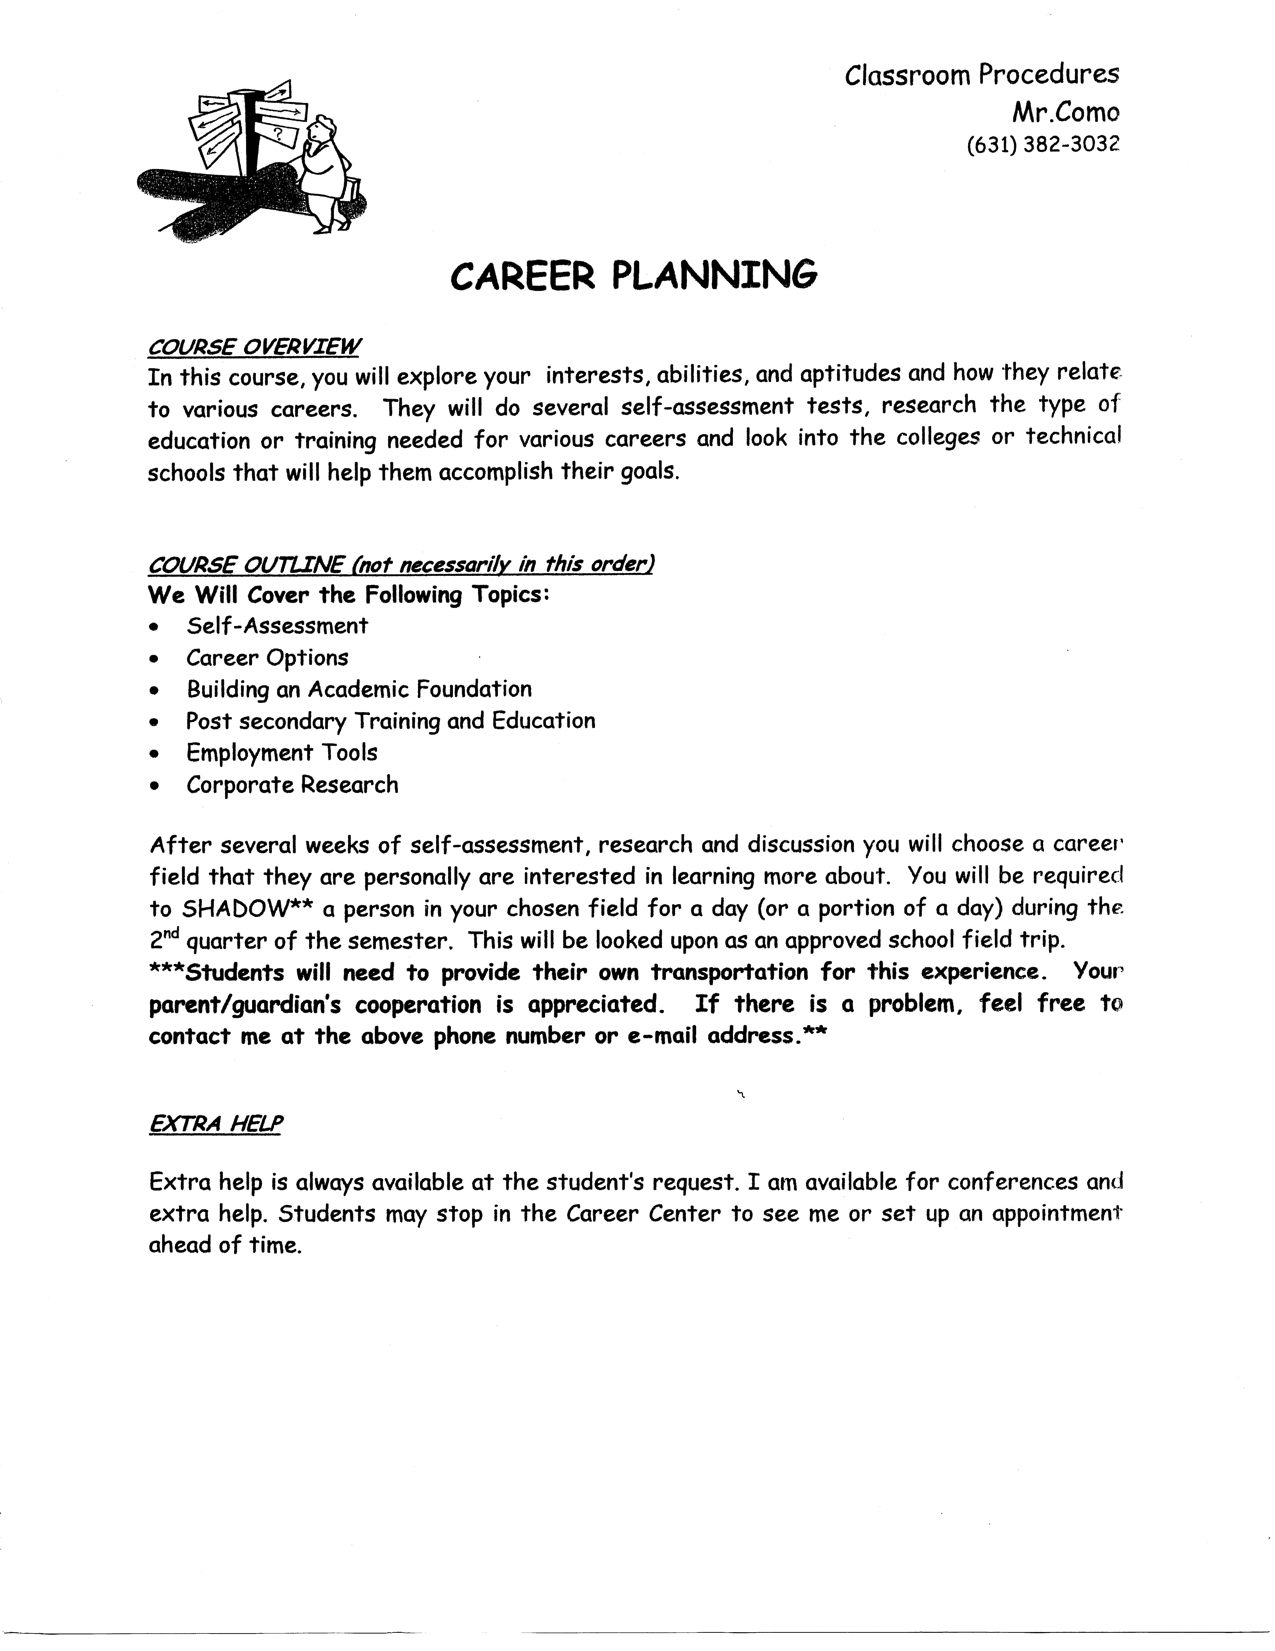 009 Career Planning002 Essay On Breathtaking Goals And Aspirations Sample Choosing A Path Full